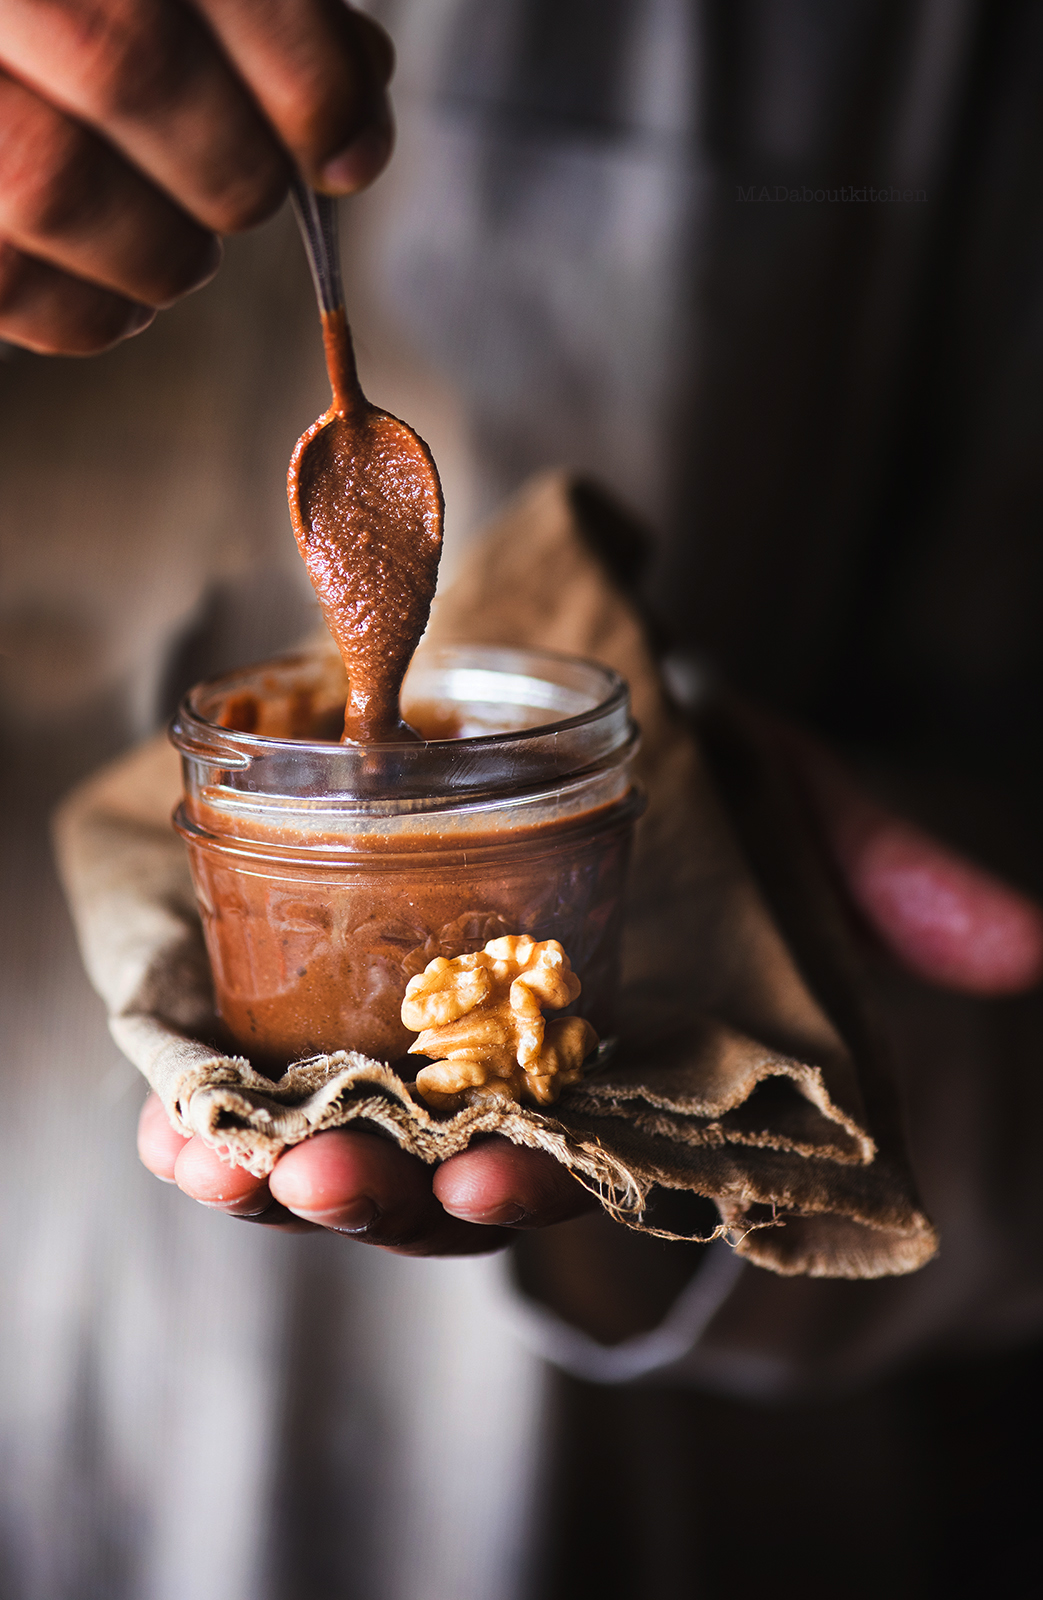 Walnut cocoa butter, is a grainy, chocolaty, homemade nut butter that is super healthy and super tasty and super easy to make.